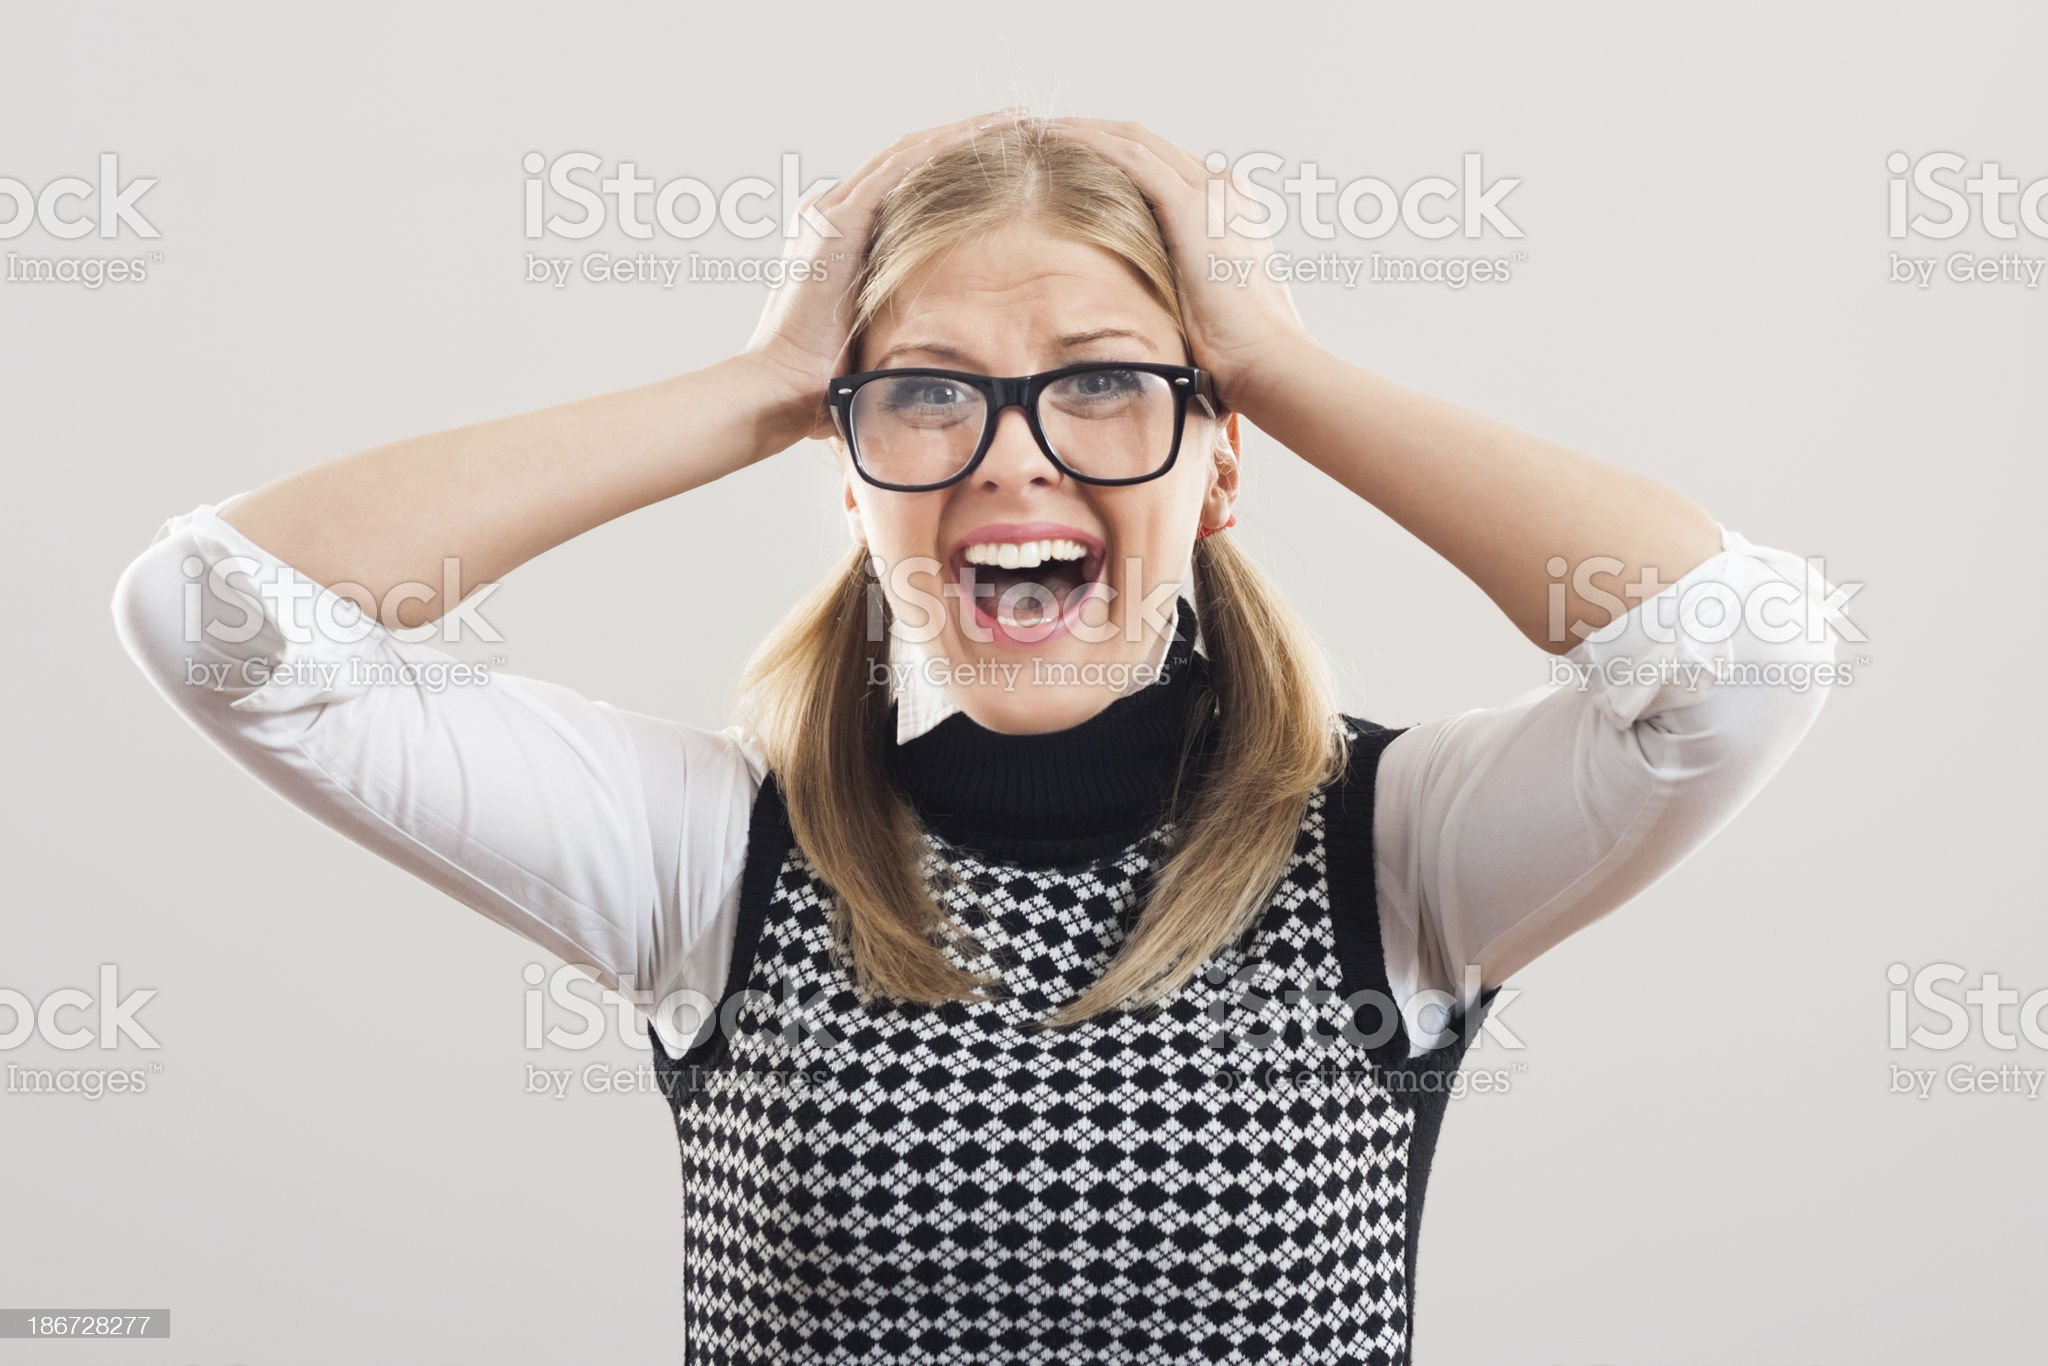 Frustrated nerdy woman royalty-free stock photo